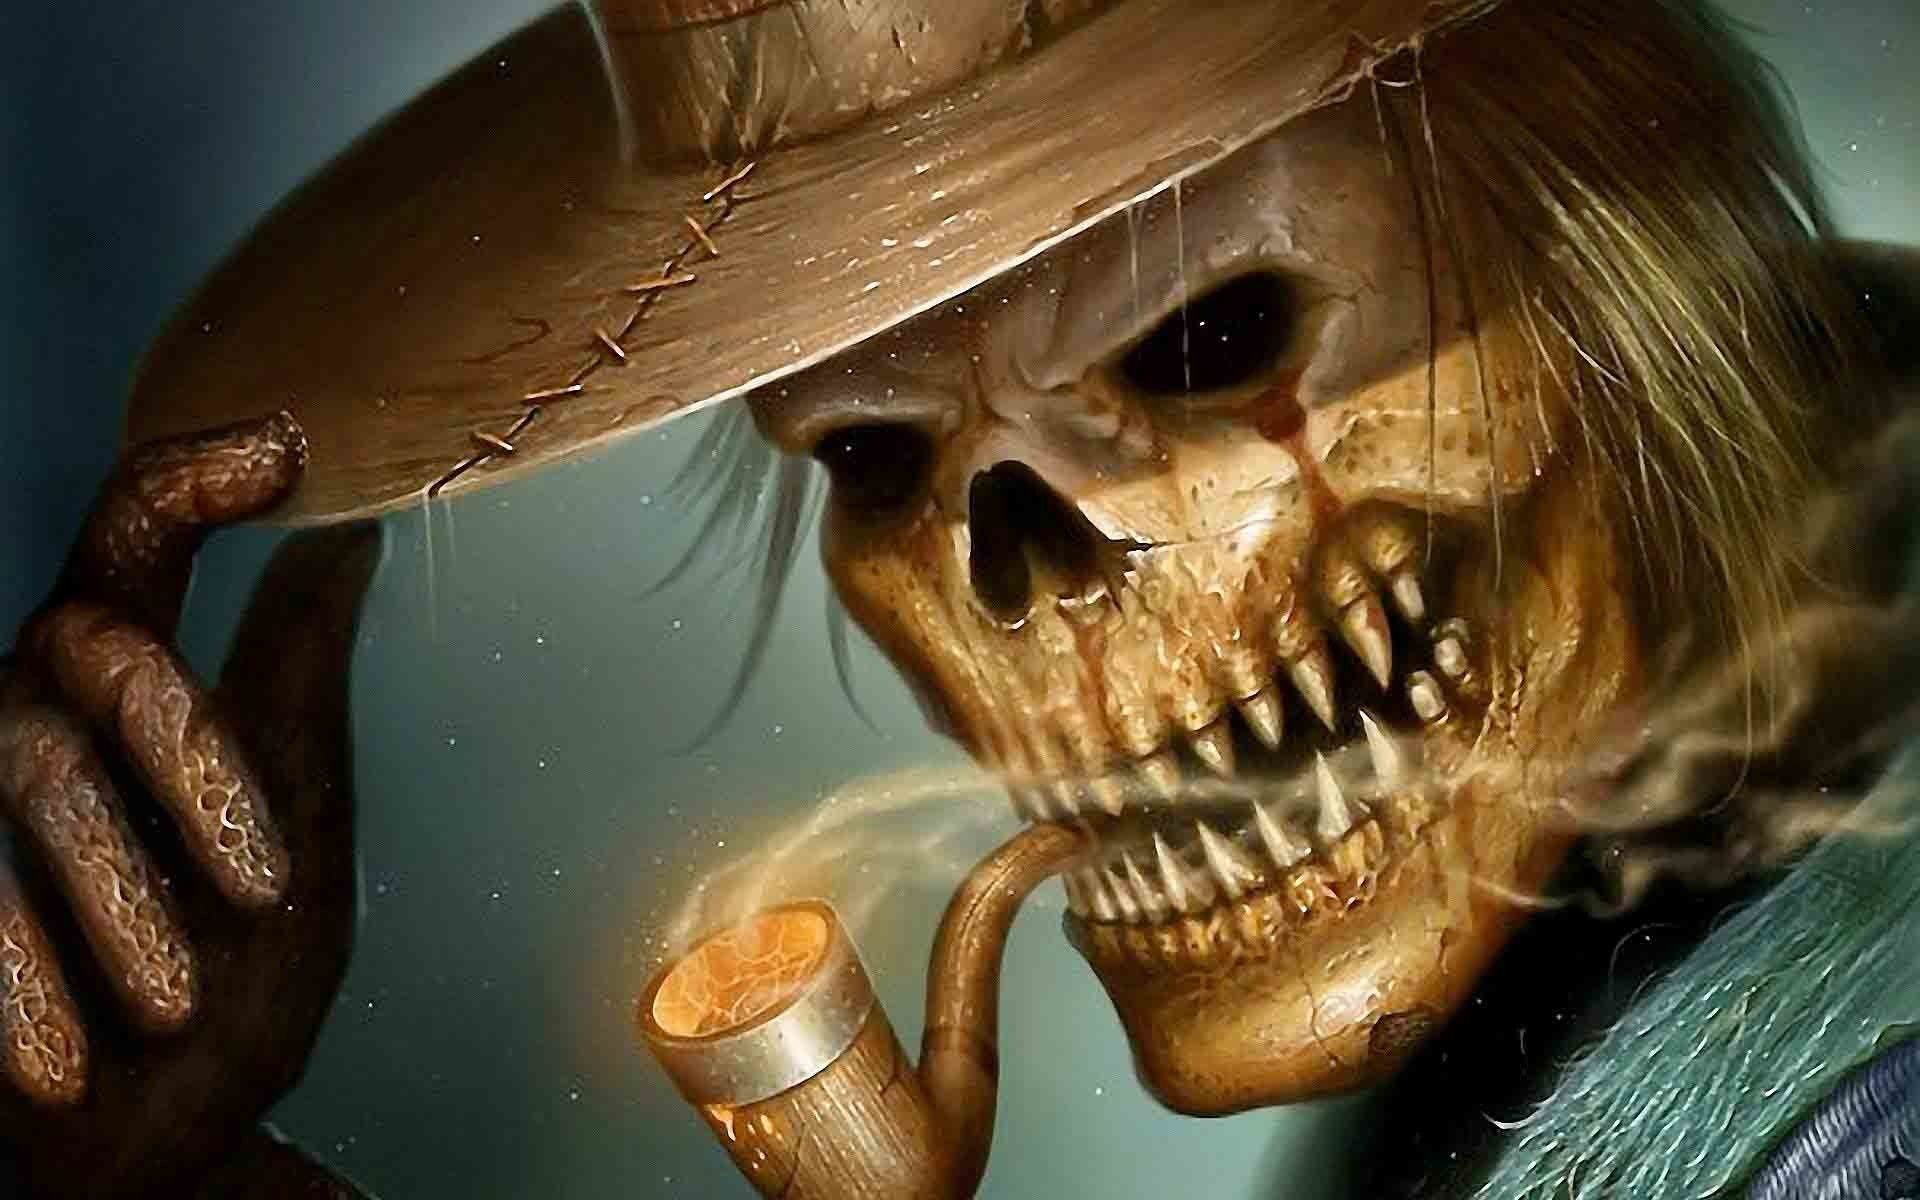 1920x1200 Funny Skeleton Wallpaper Best HD Images of Skeleton HD | HD Wallpapers |  Pinterest | Skeletons, Hd wallpaper and Wallpaper